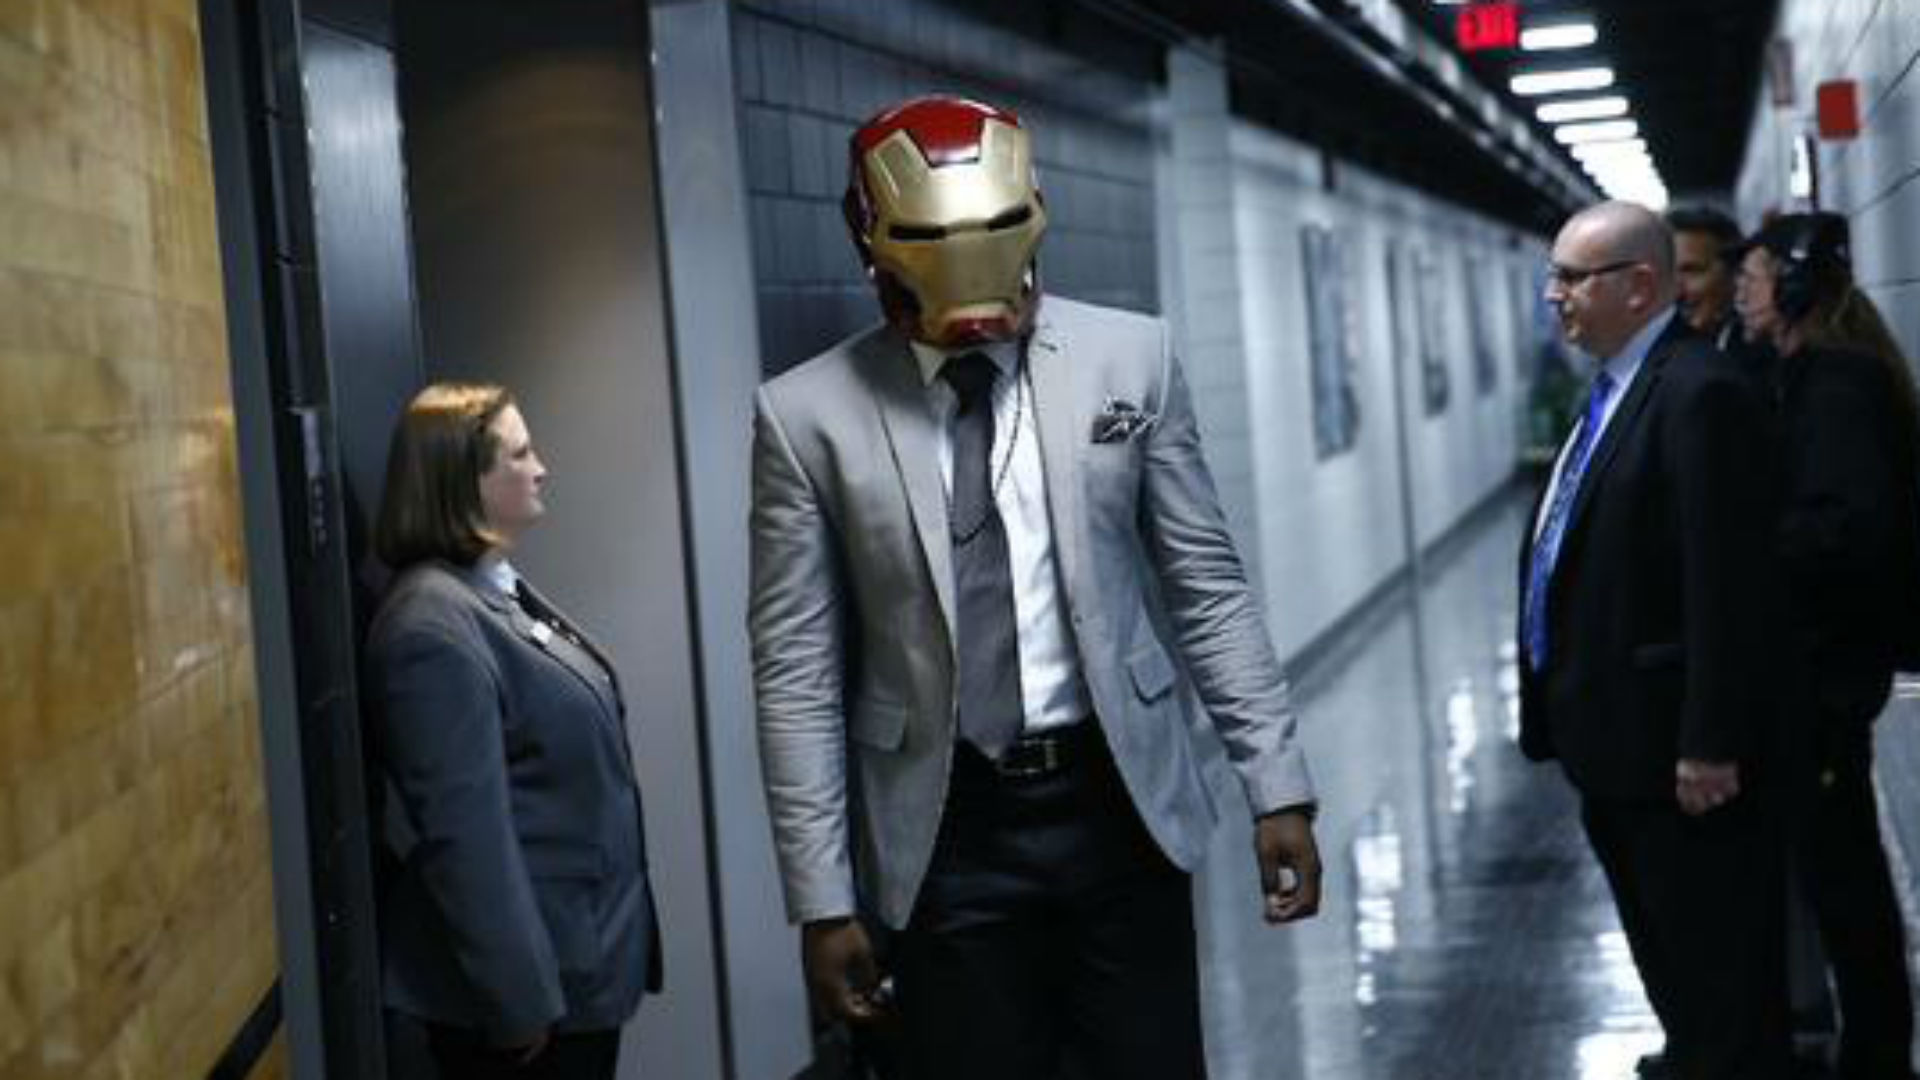 Wes Matthews arrives at Blazers game wearing Iron Man mask